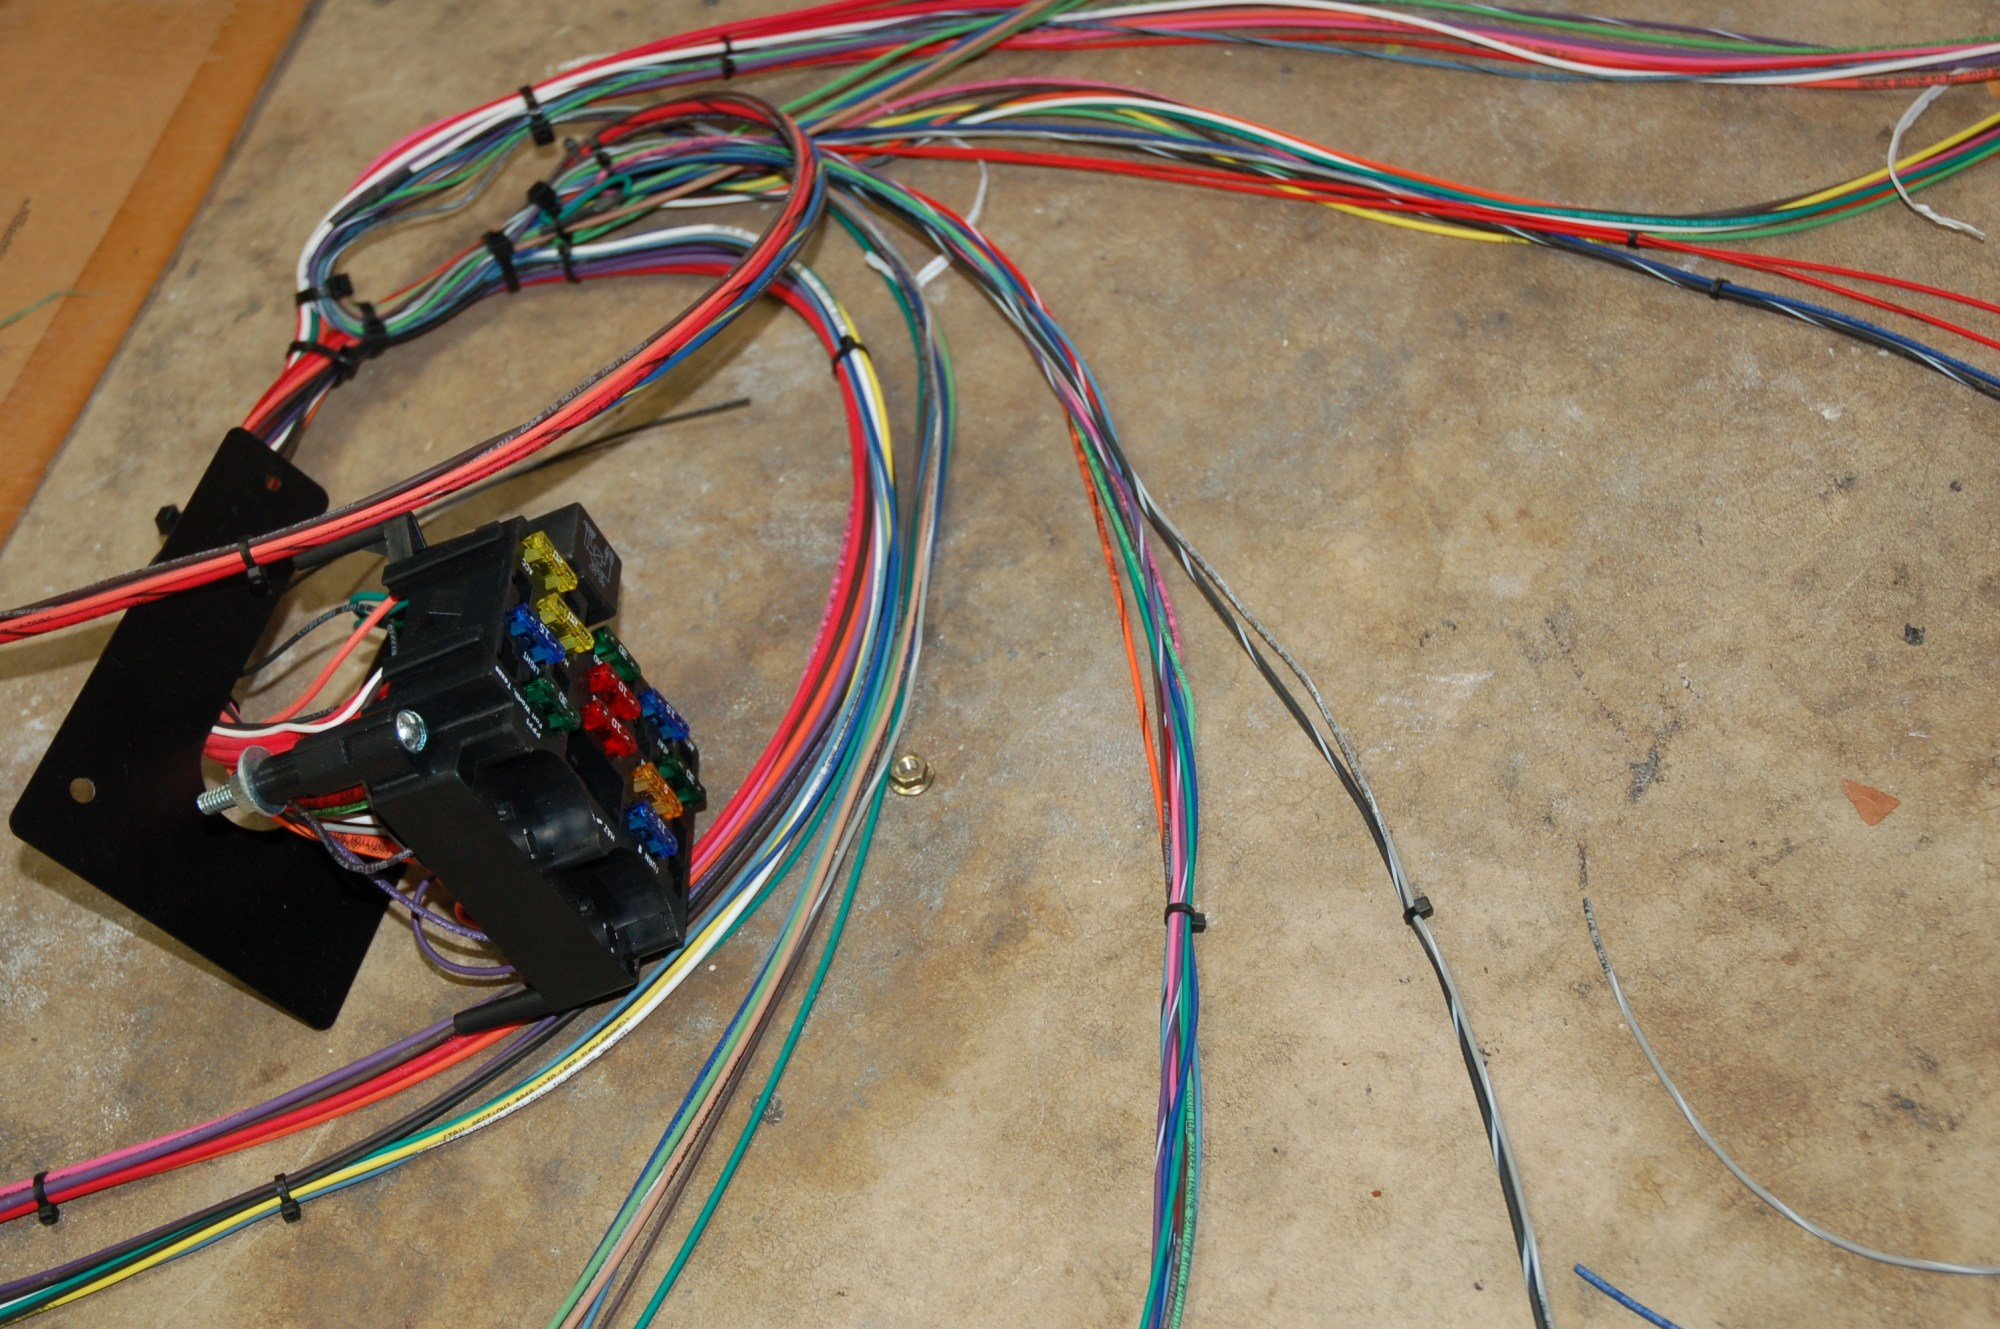 hight resolution of 67 mustang dash wiring harness removal wiring diagram perfomance in our garage installing a new wiring